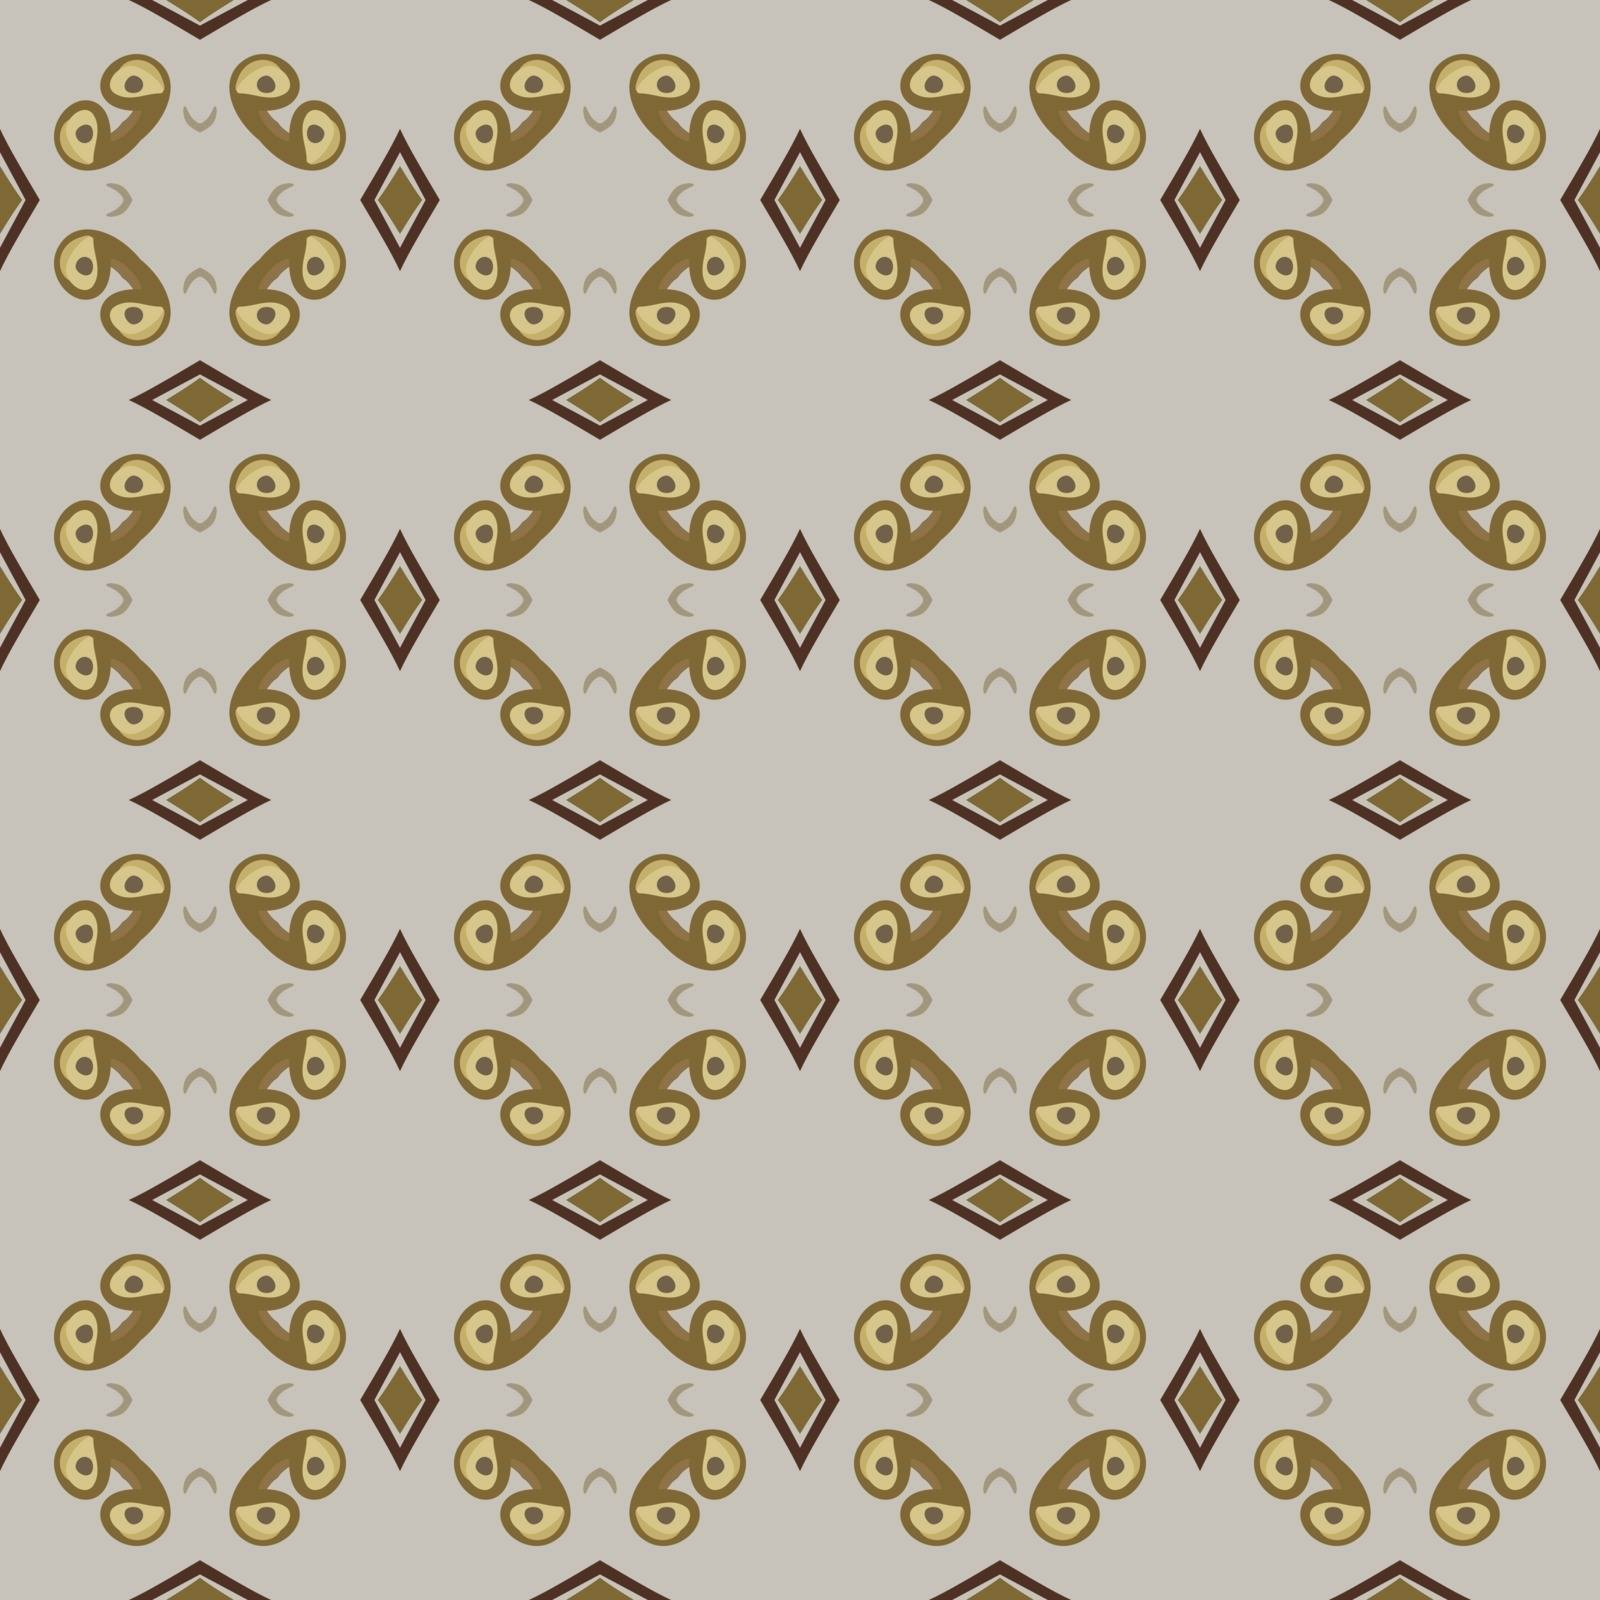 Seamless illustrated pattern made of abstract elements in beige, brown and yellow